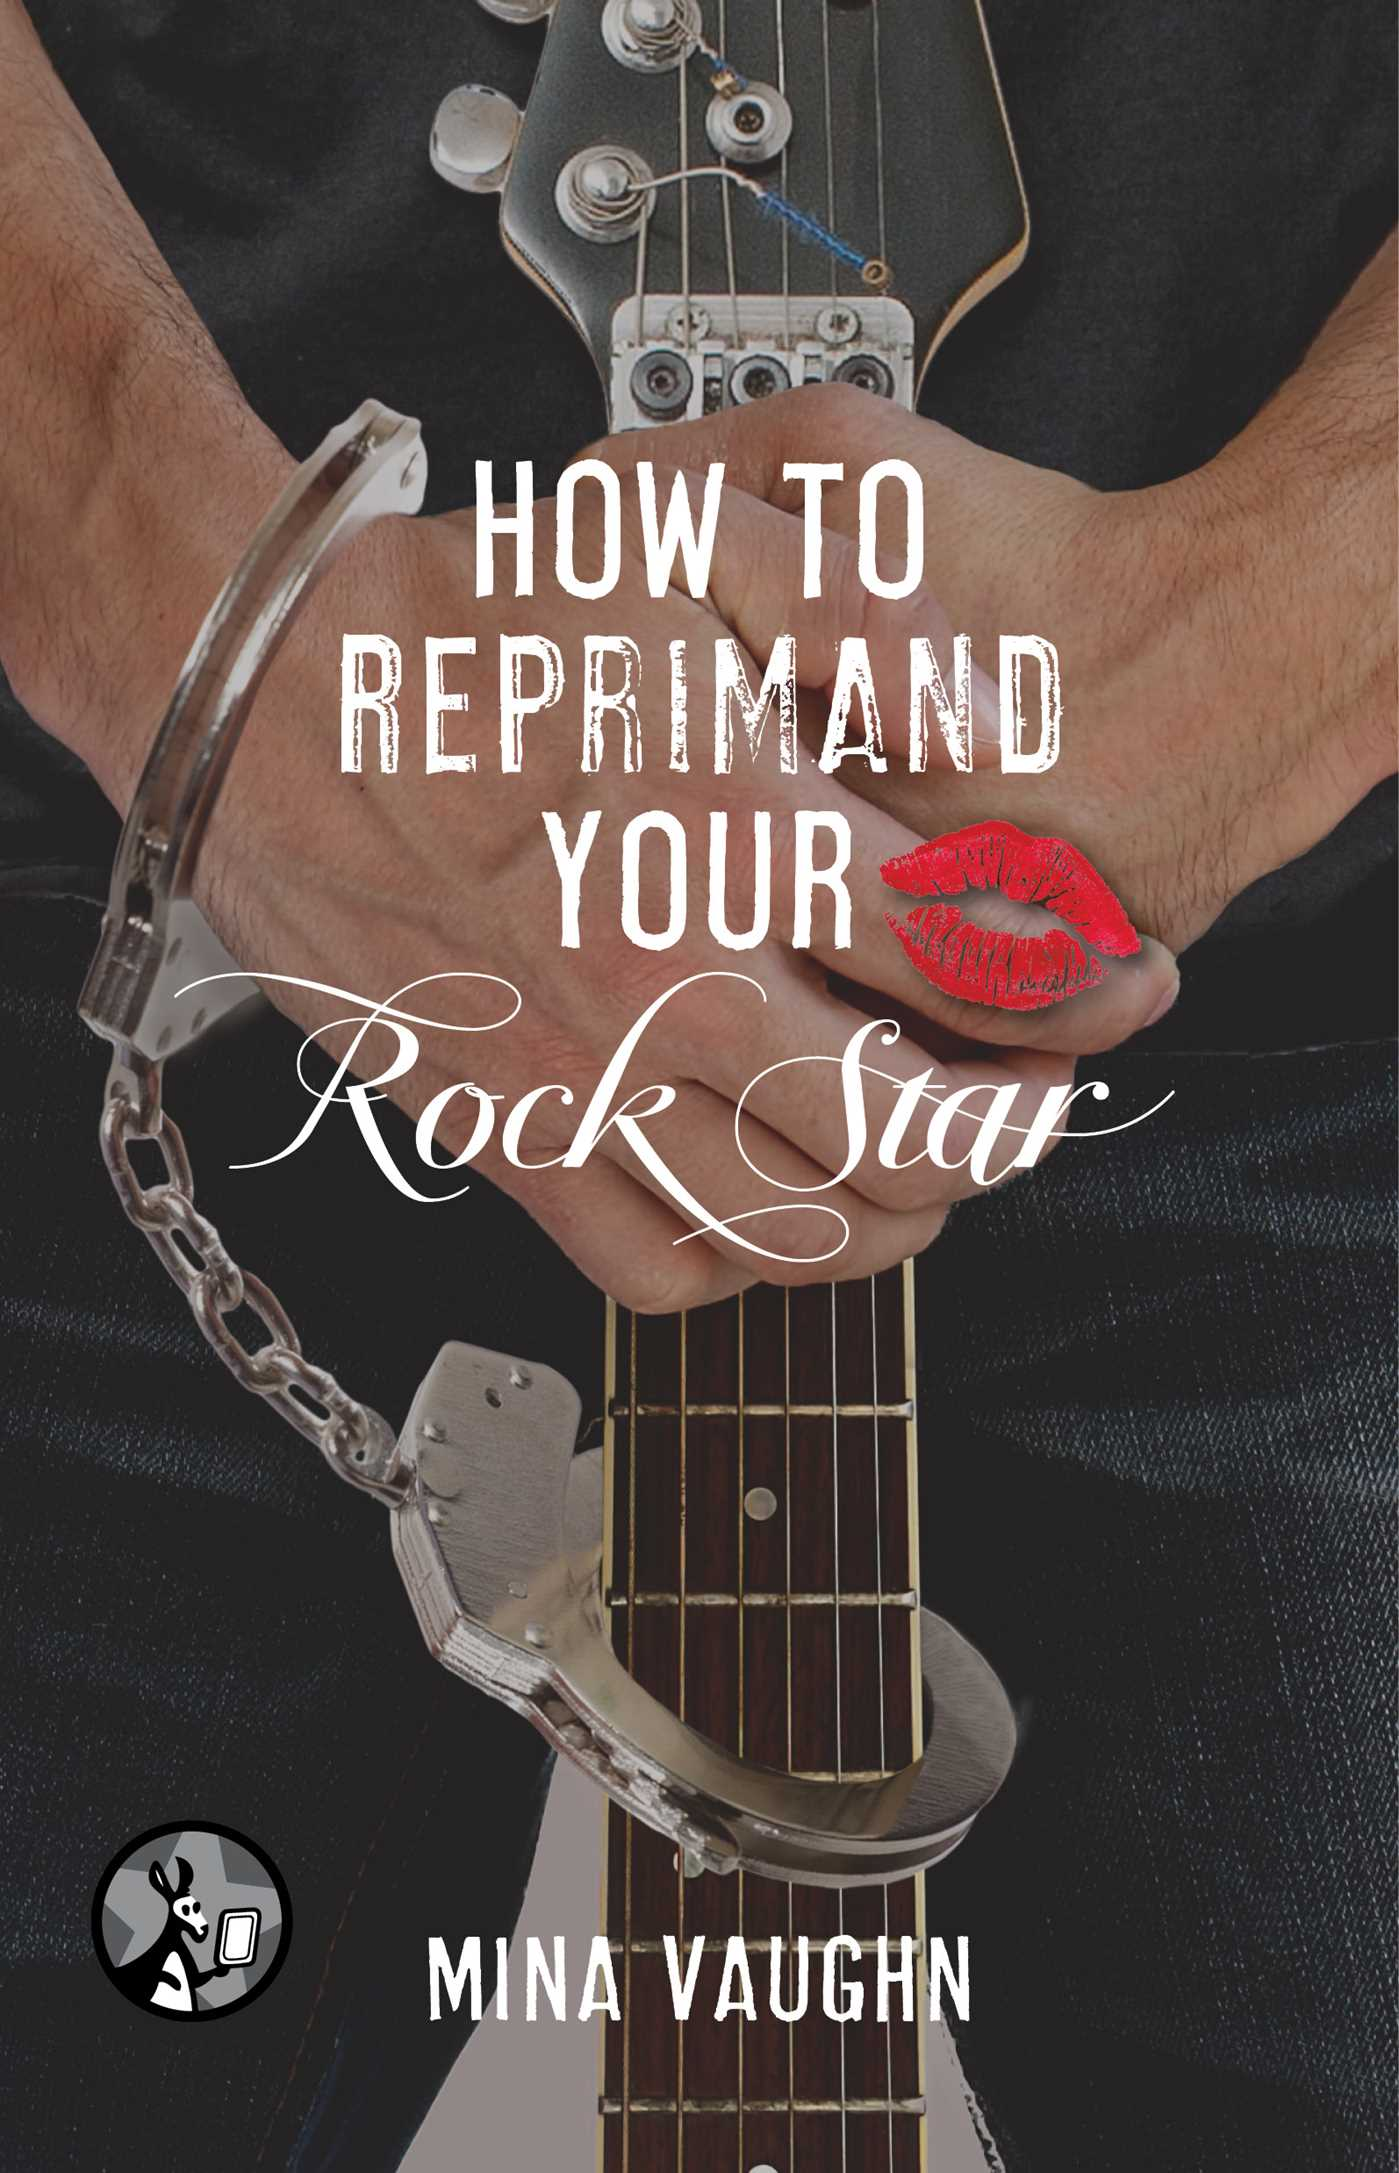 How to reprimand your rock star 9781476770239 hr